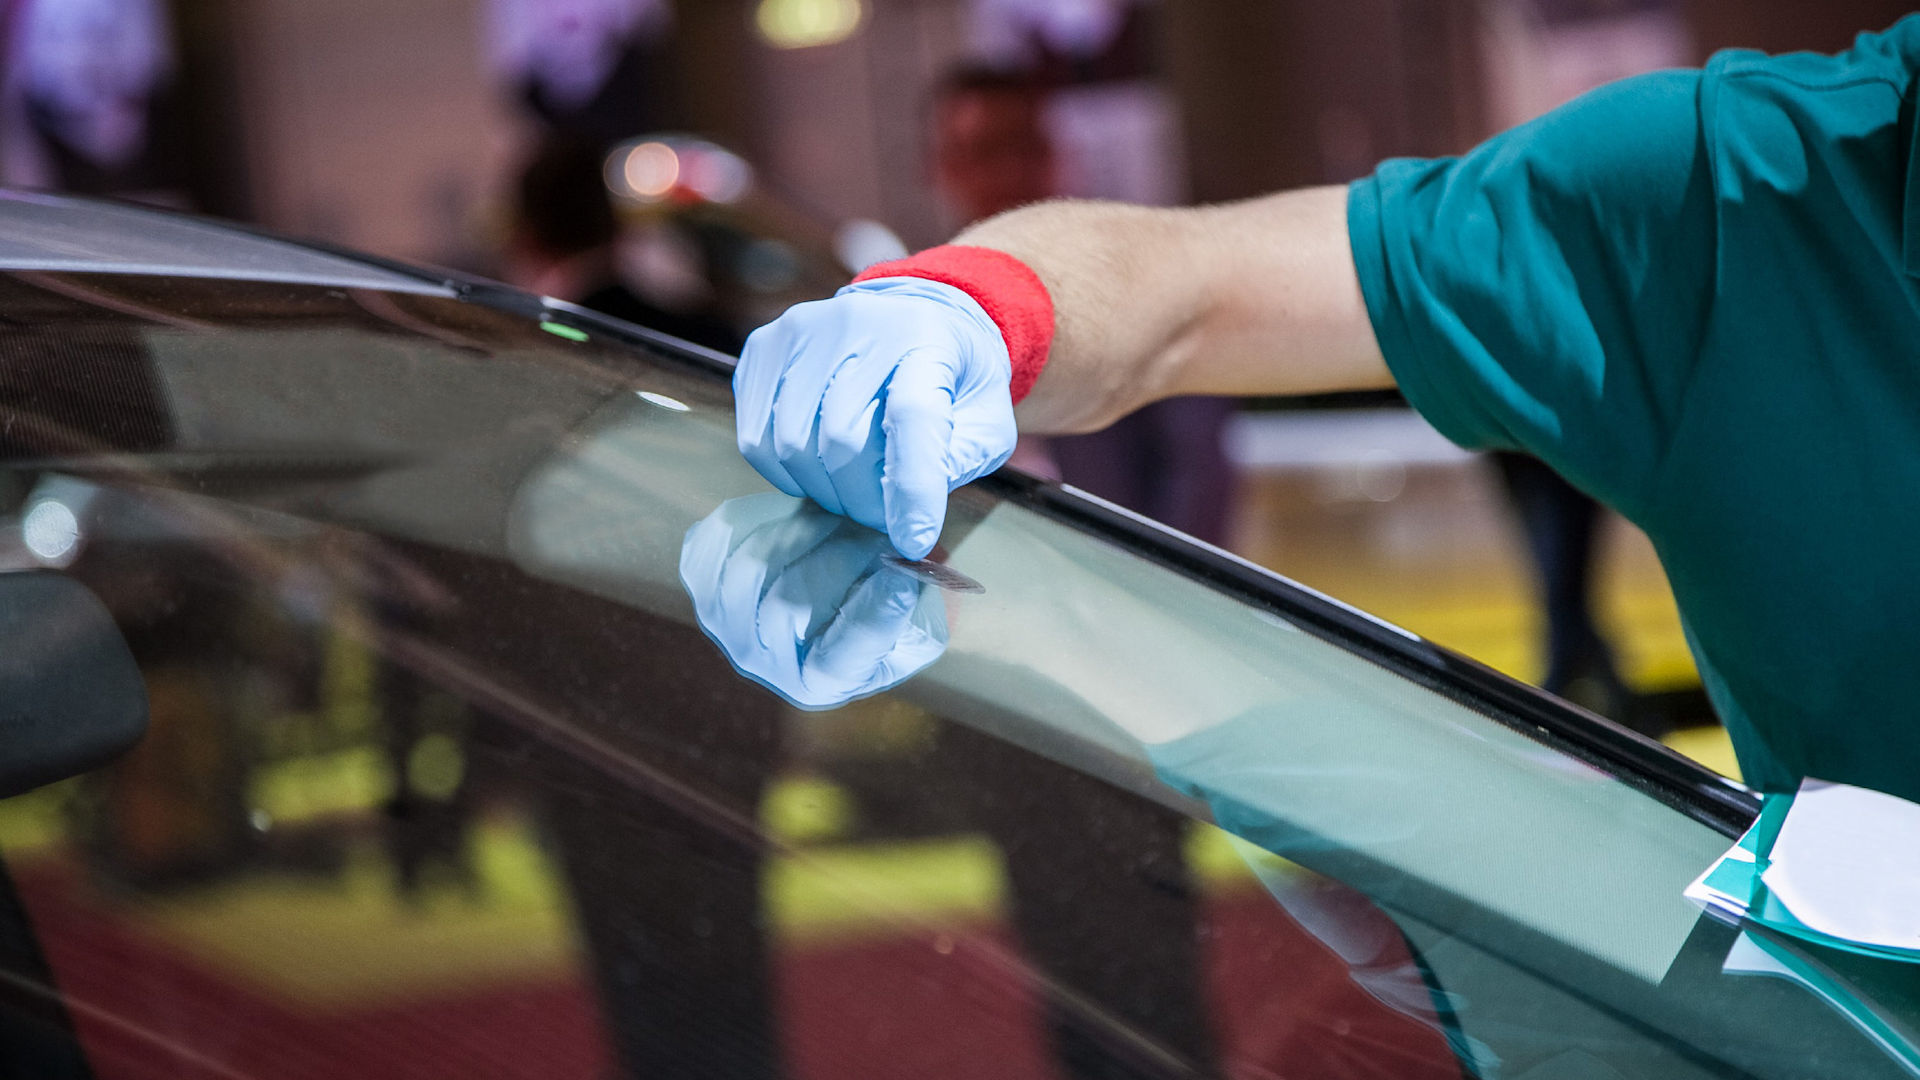 Windshield Replacement Quote Online Our Services  Cv Auto Glass